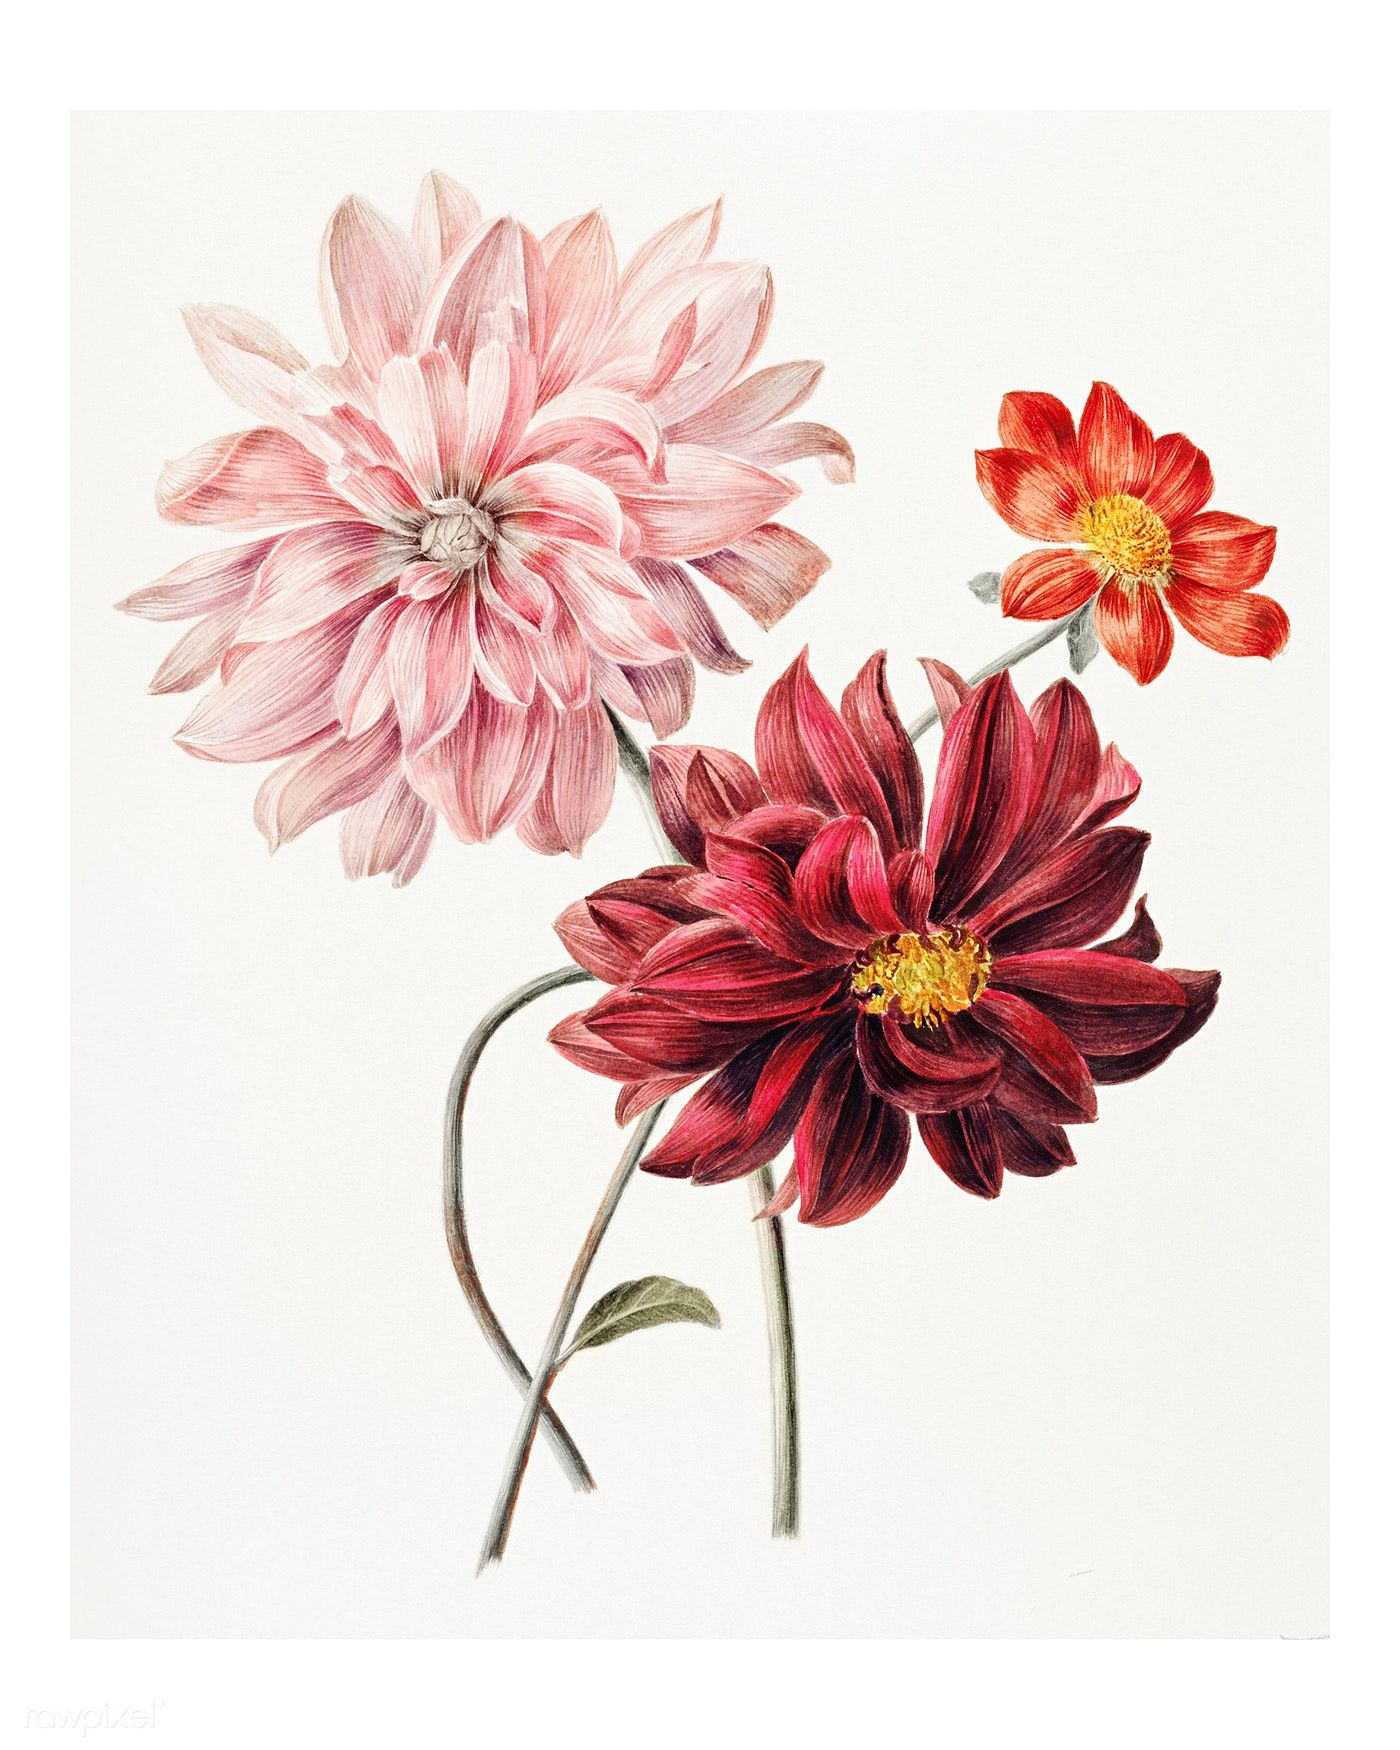 Download Premium Illustration Of Colorful Dahlias Vintage Illustration In 2020 Flower Illustration Illustration Wall Art Digital Flowers